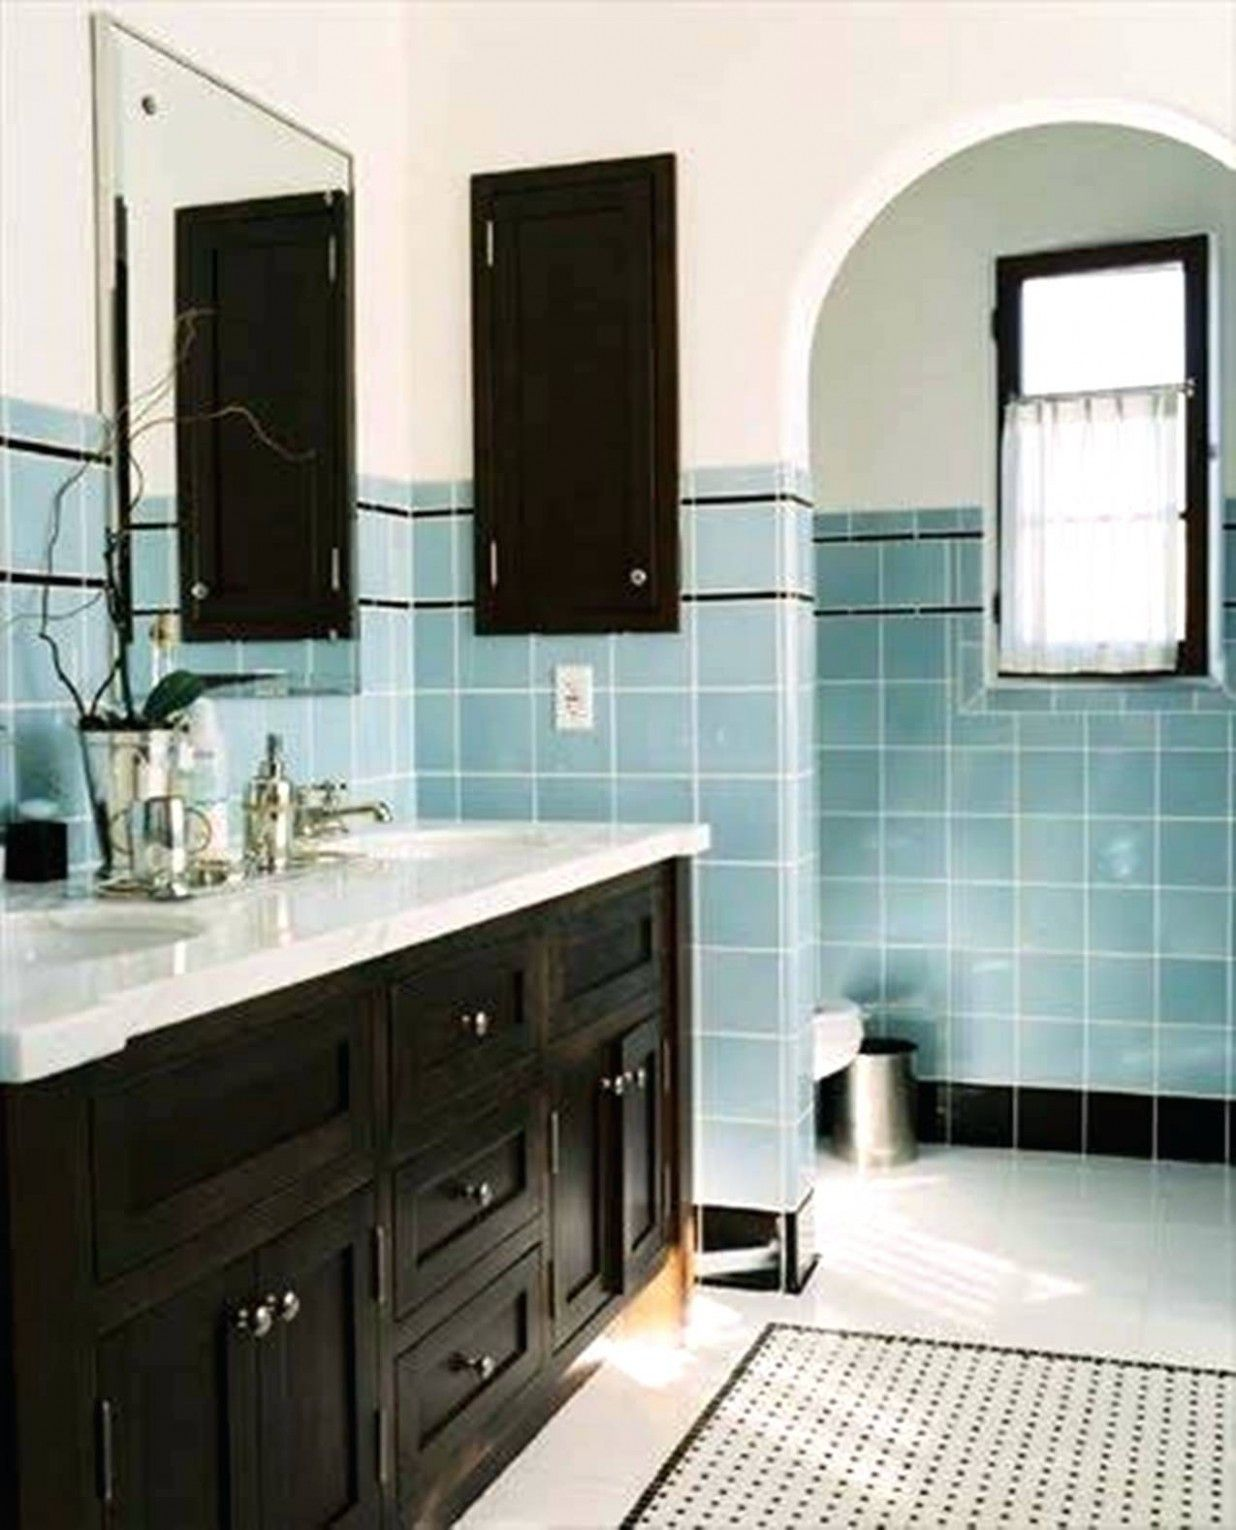 Vintage Blue Tile Bathroom Decorating Ideas In 2020 Blue Bathroom Tile Vintage Bathroom Tile Retro Bathrooms